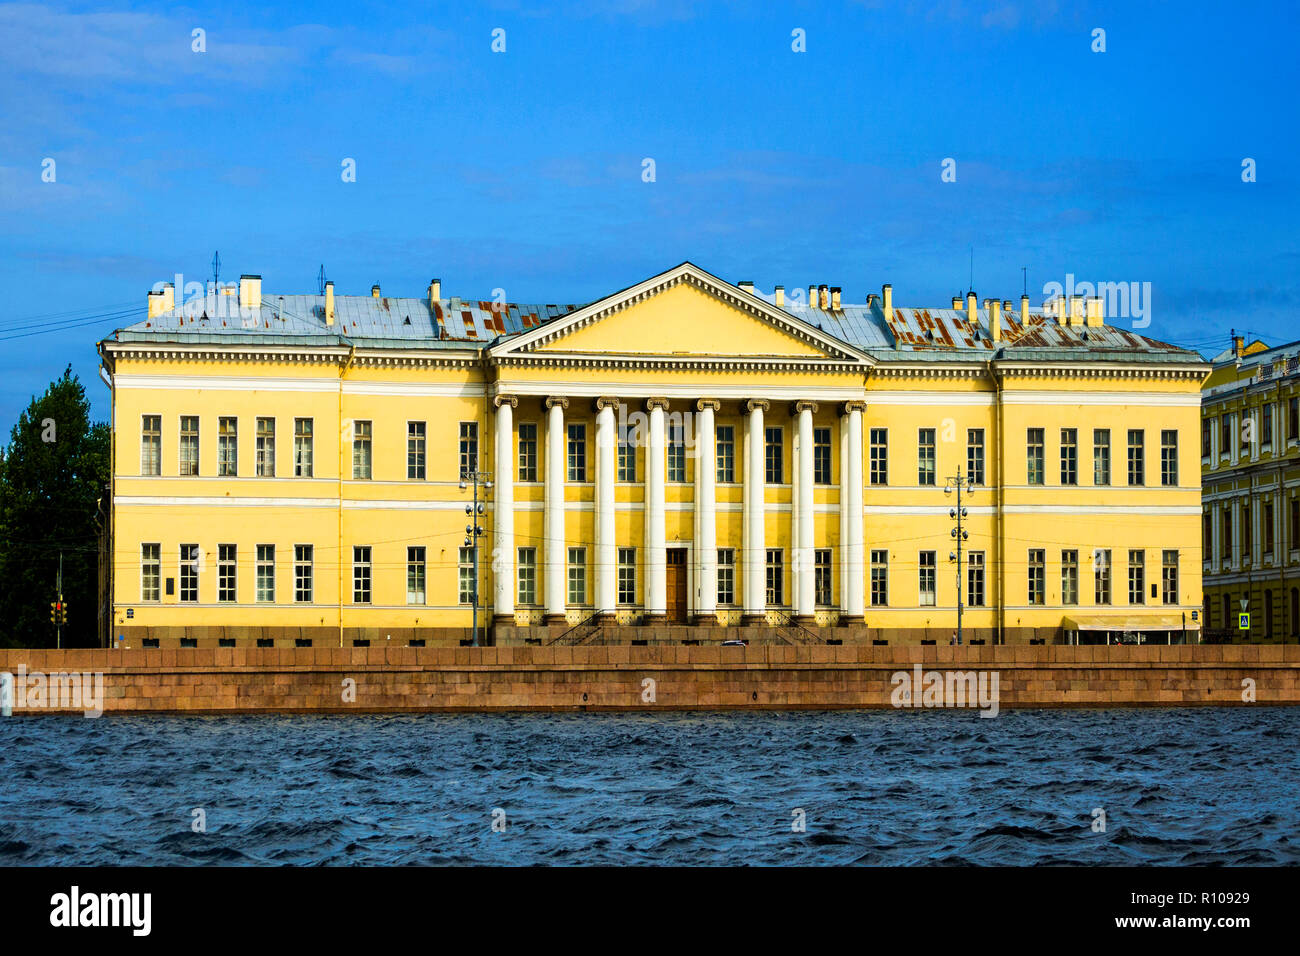 Academy of Sciences of the Russian Federation St Saint Petersburg, Russian Sankt Peterburg, formerly (1914–24) Petrograd and (1924–91) Leningrad, city Stock Photo